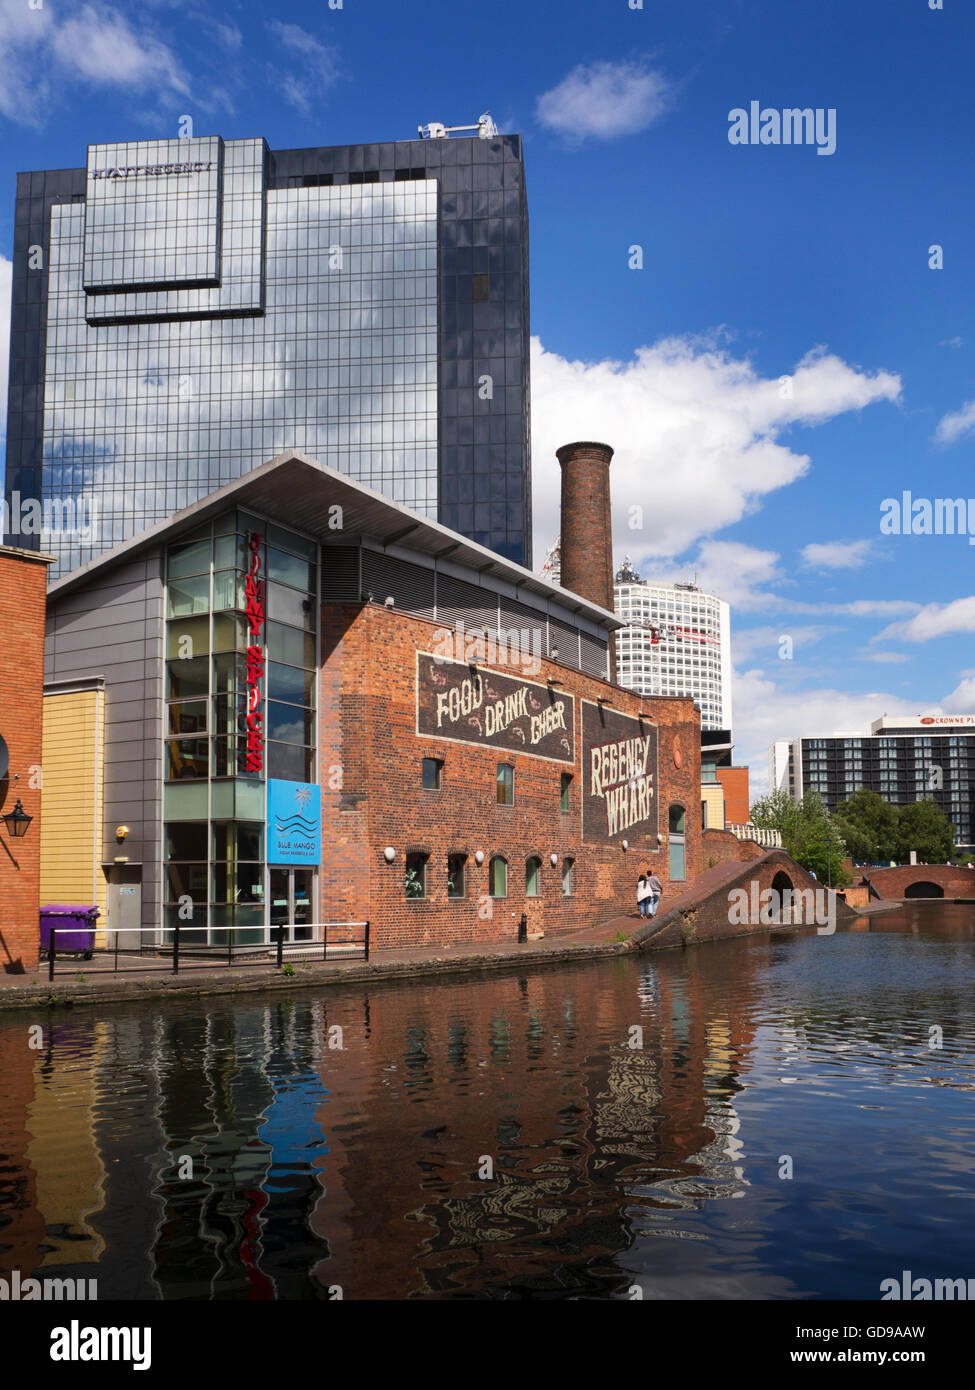 Regency Wharf am Birmingham Kanal an Gas Street Basin Birmingham West Midlands in England Stockbild